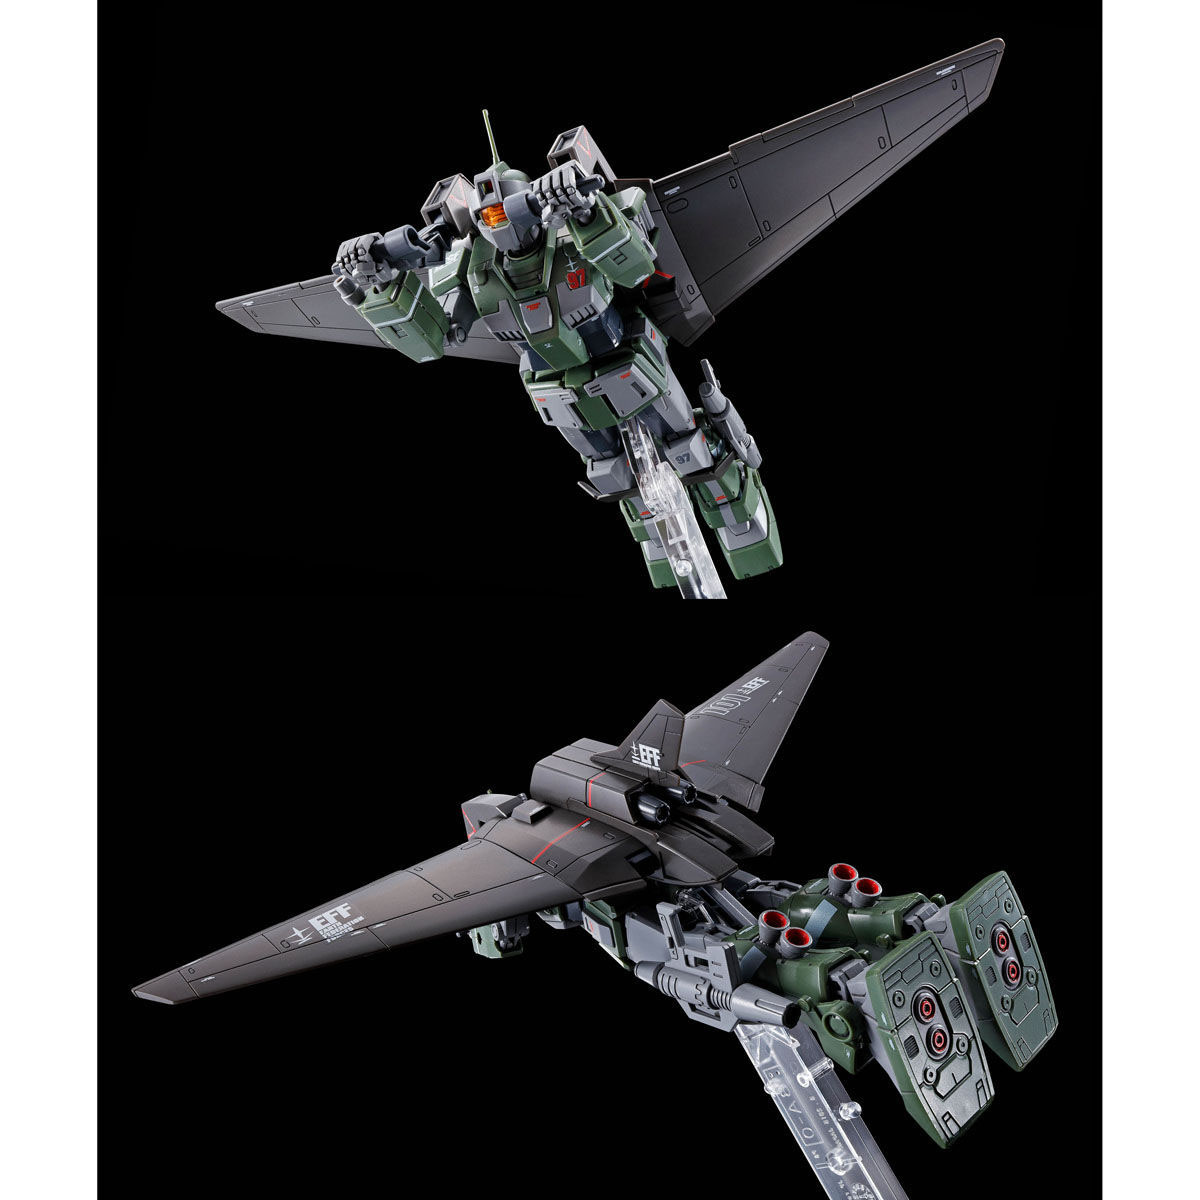 HG 1/144 LIGHT LINER [Mar 2021 Delivery]